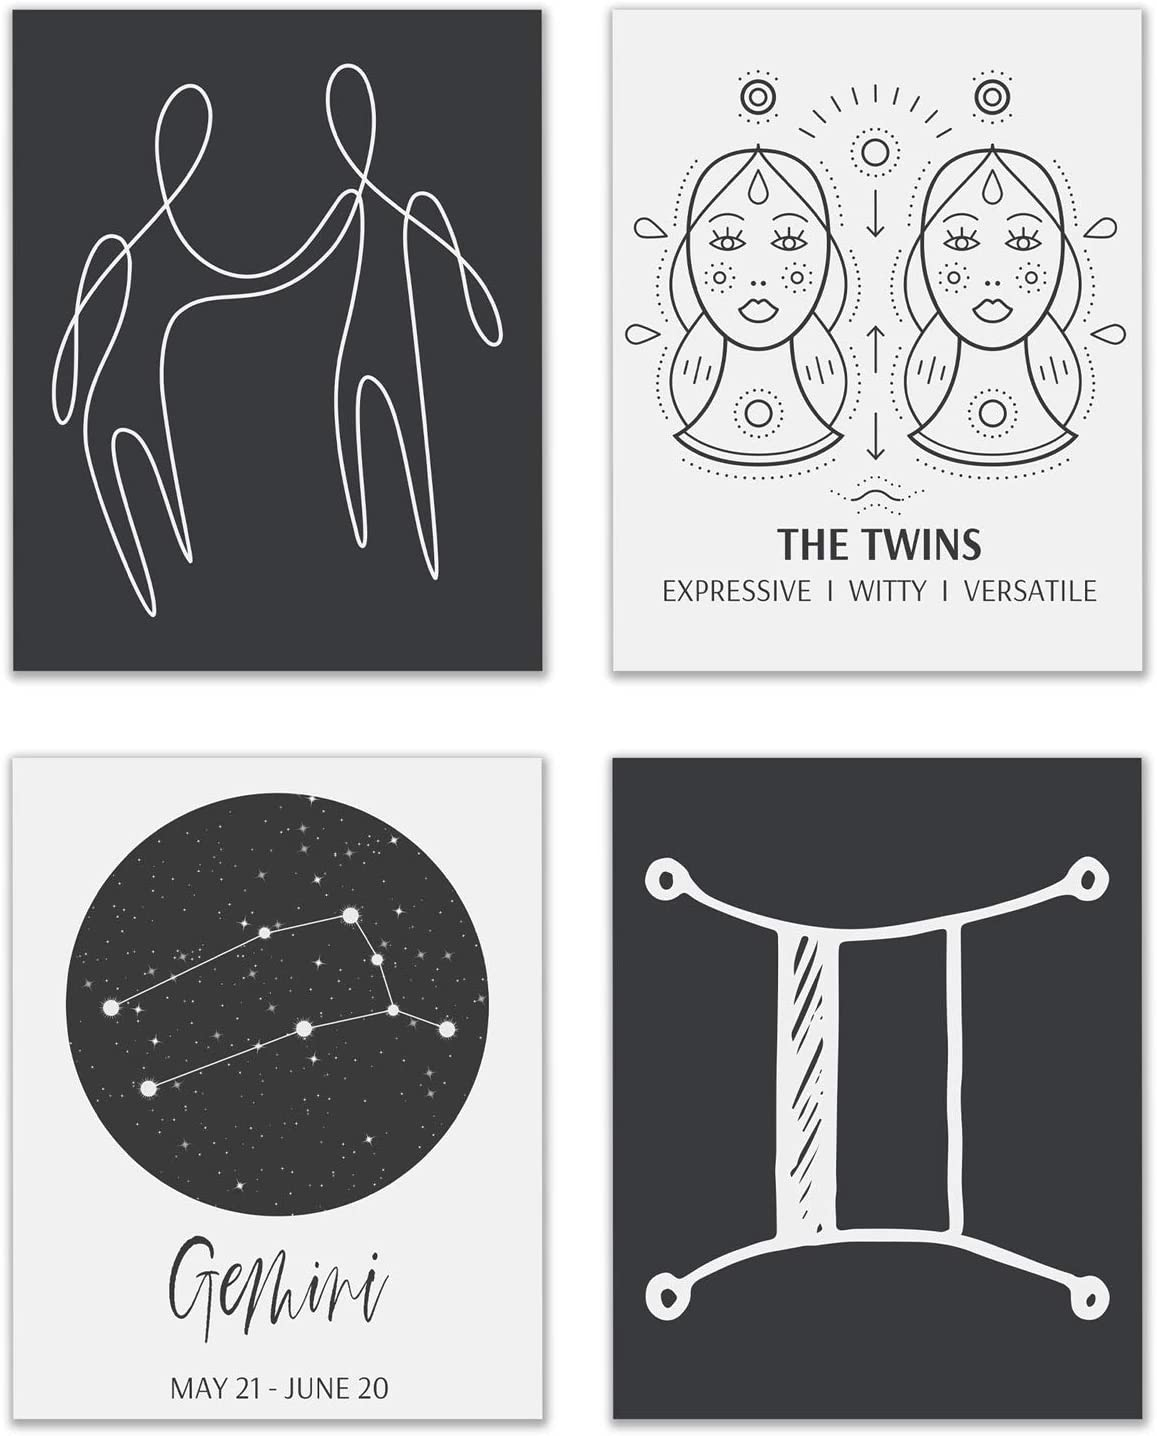 Gemini Astrological Sign Prints - Set of 4 (8x10 Inches) Zodiac Constellation Horoscope Star Sign Four Elements Wall Art Decor - The Twins - Air - Mutable - Mercury